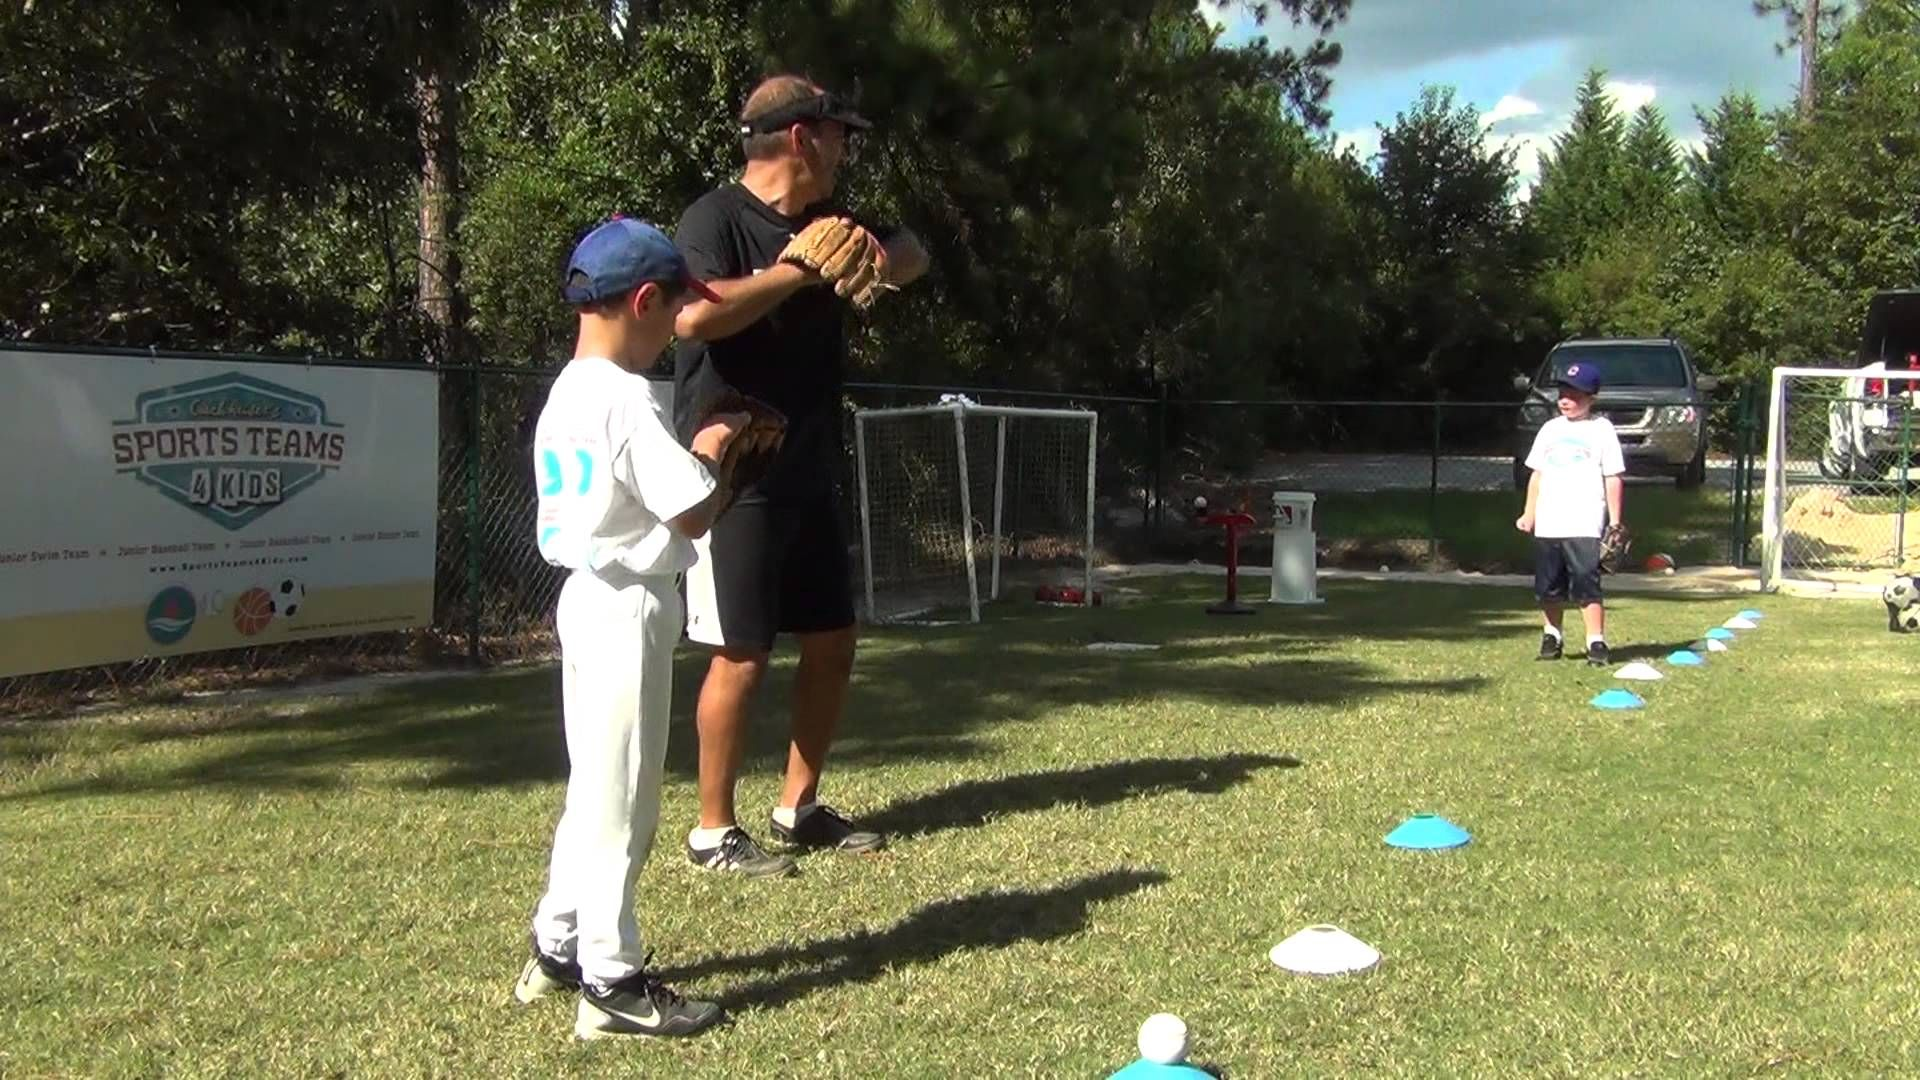 Learning How To Throw The Baseball Correctly 7 8 Year Olds Baseball Boys Kids Baseball Baseball Drills